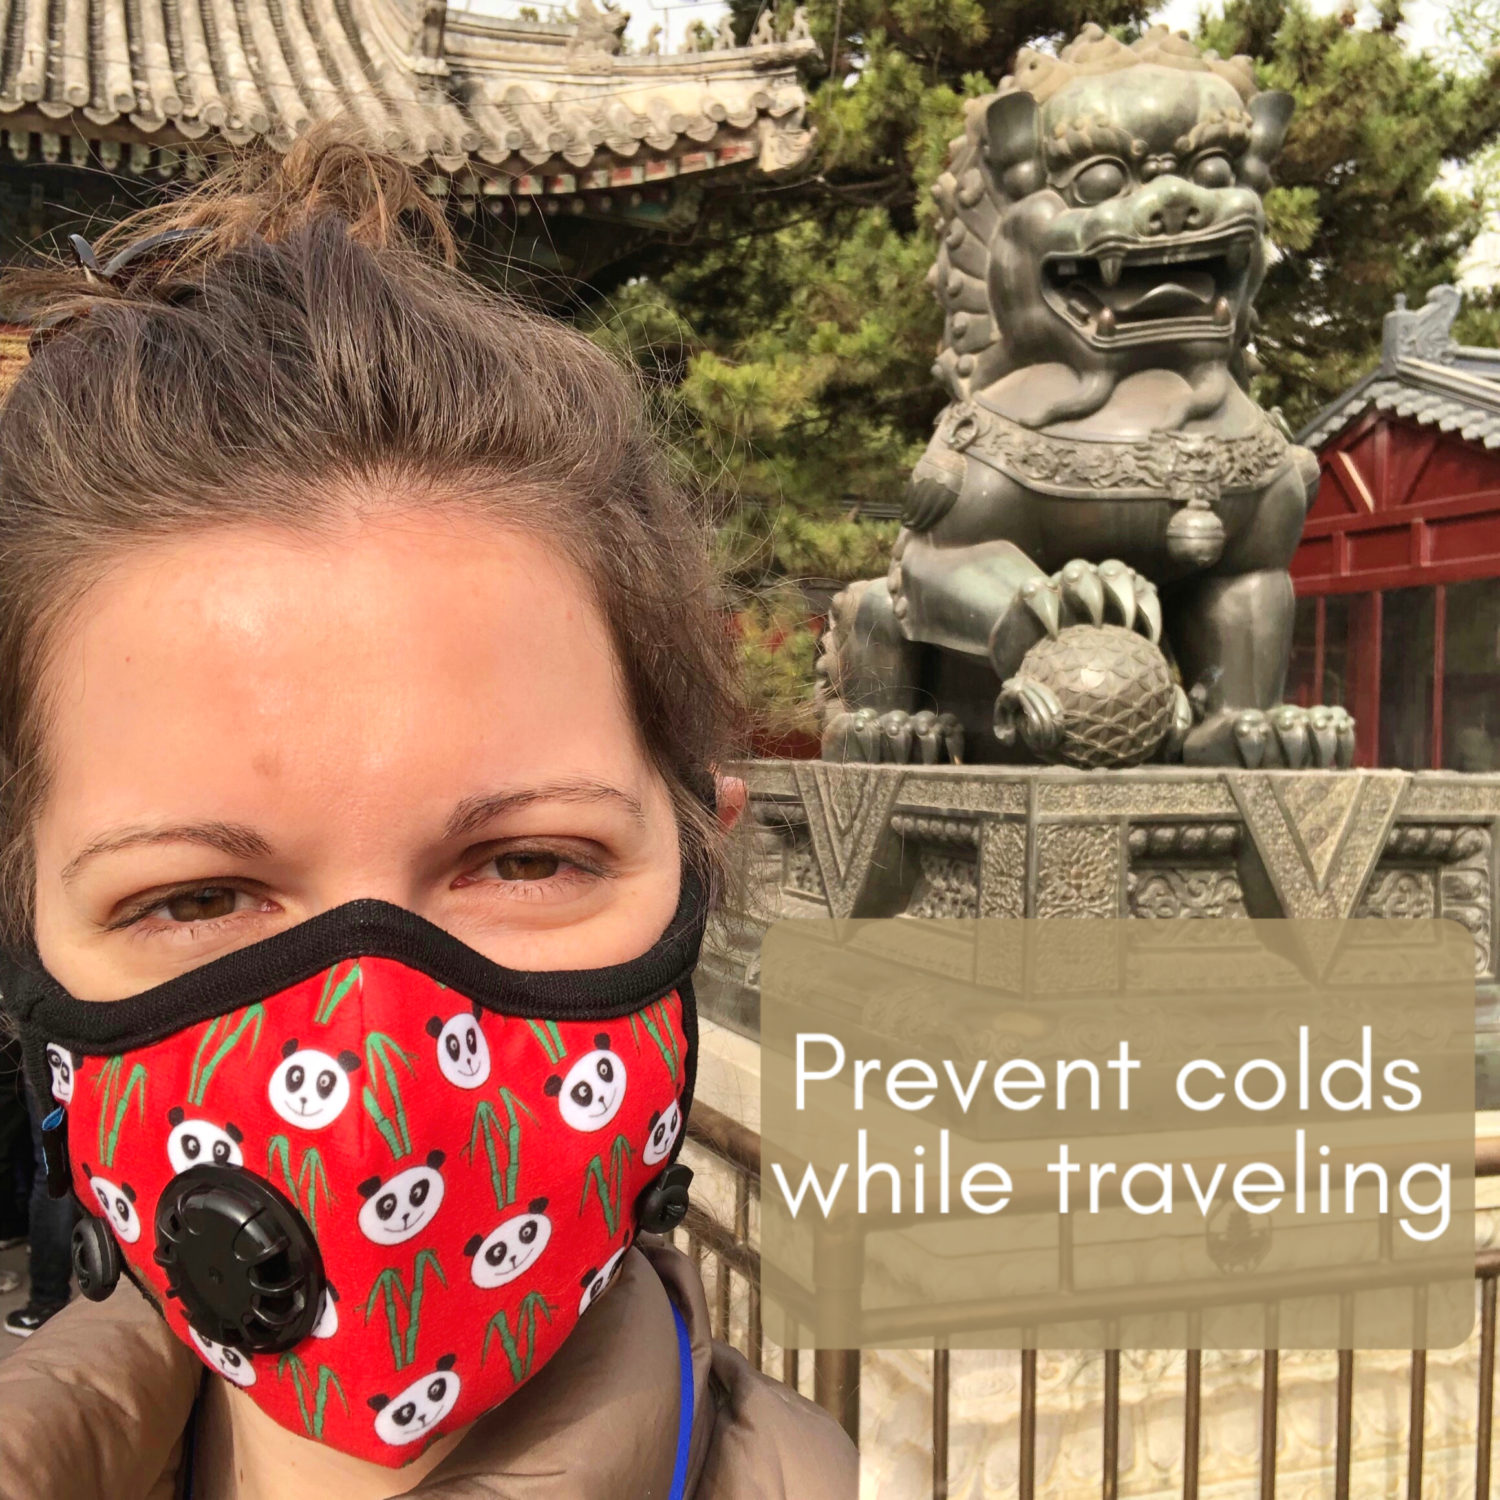 Avoid Getting Sick While Traveling and Prevent Getting Sick